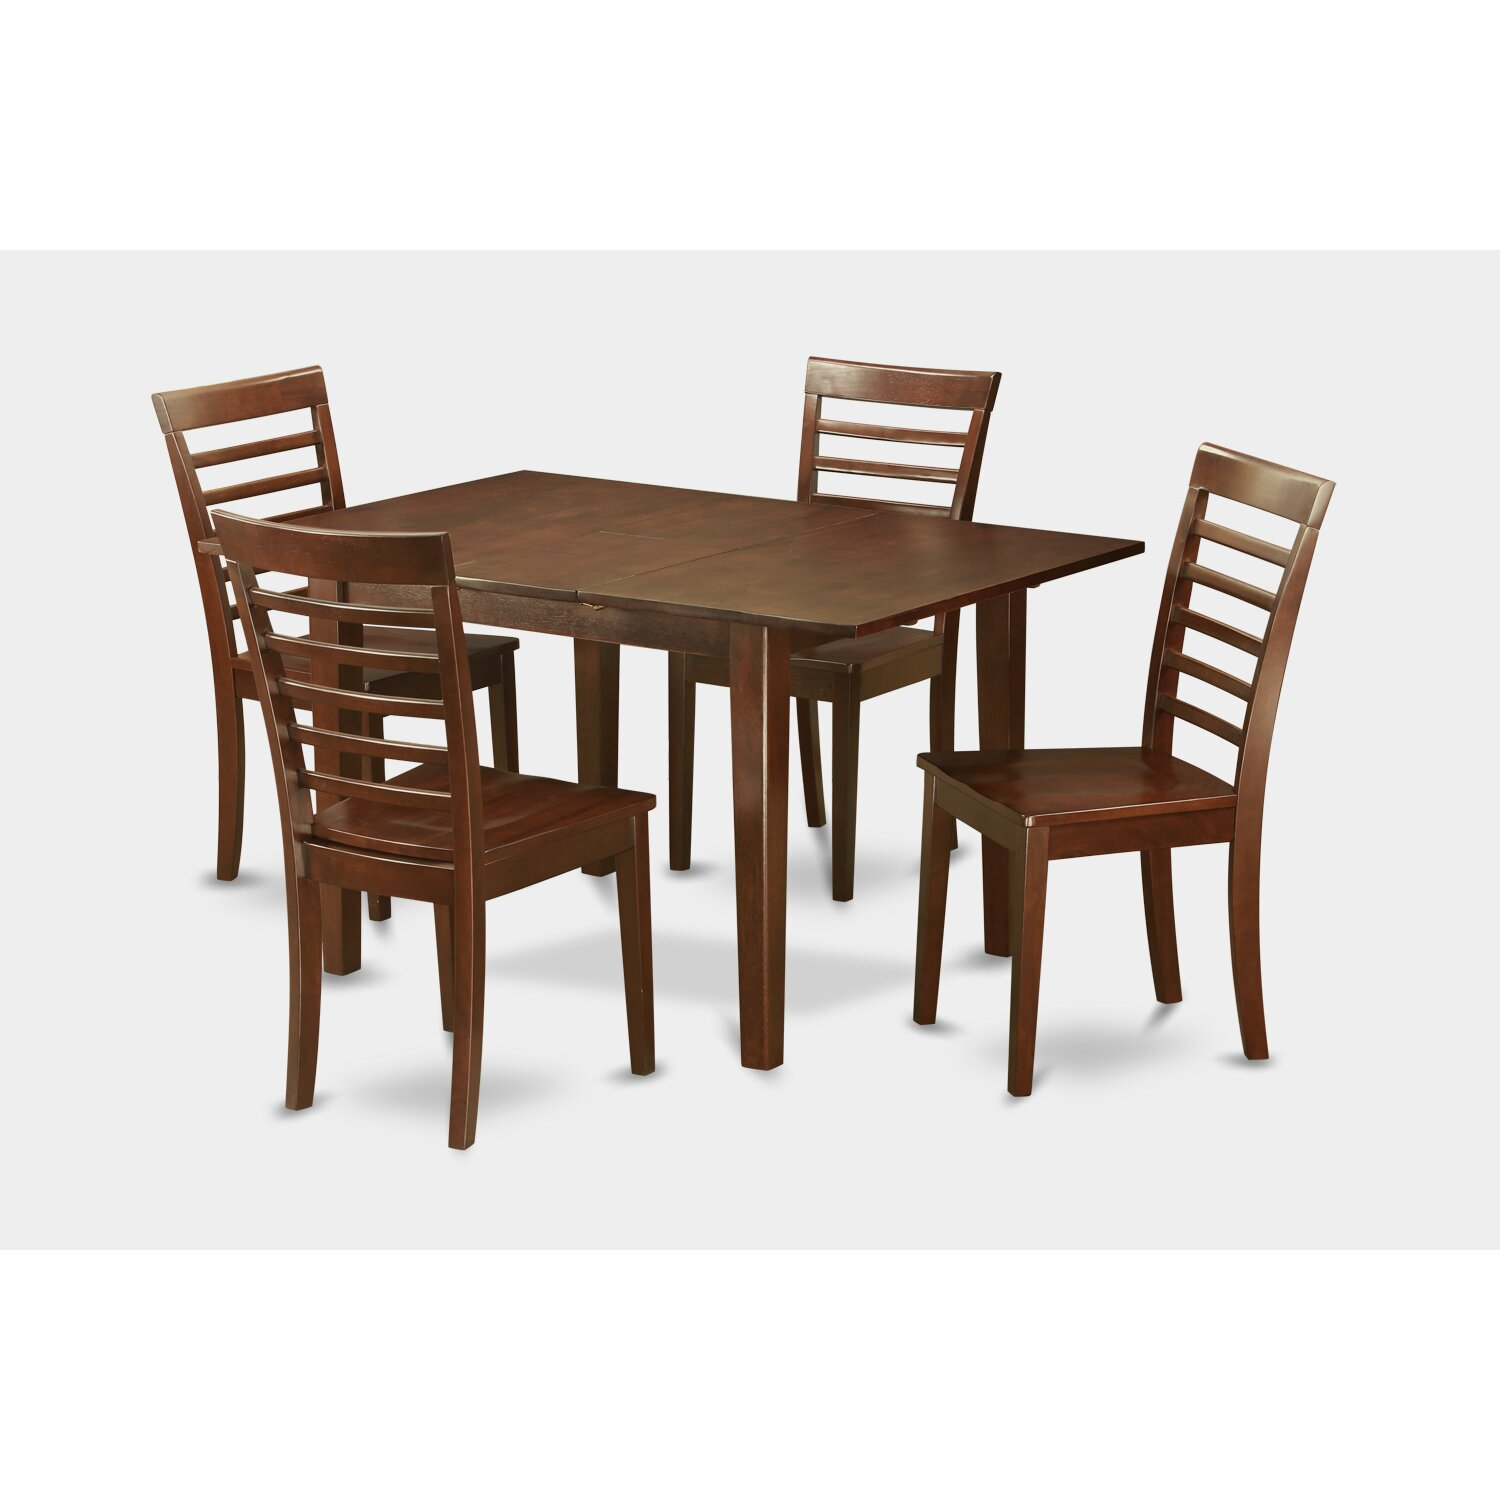 Wooden Importers Picasso 5 Piece Dining Set & Reviews